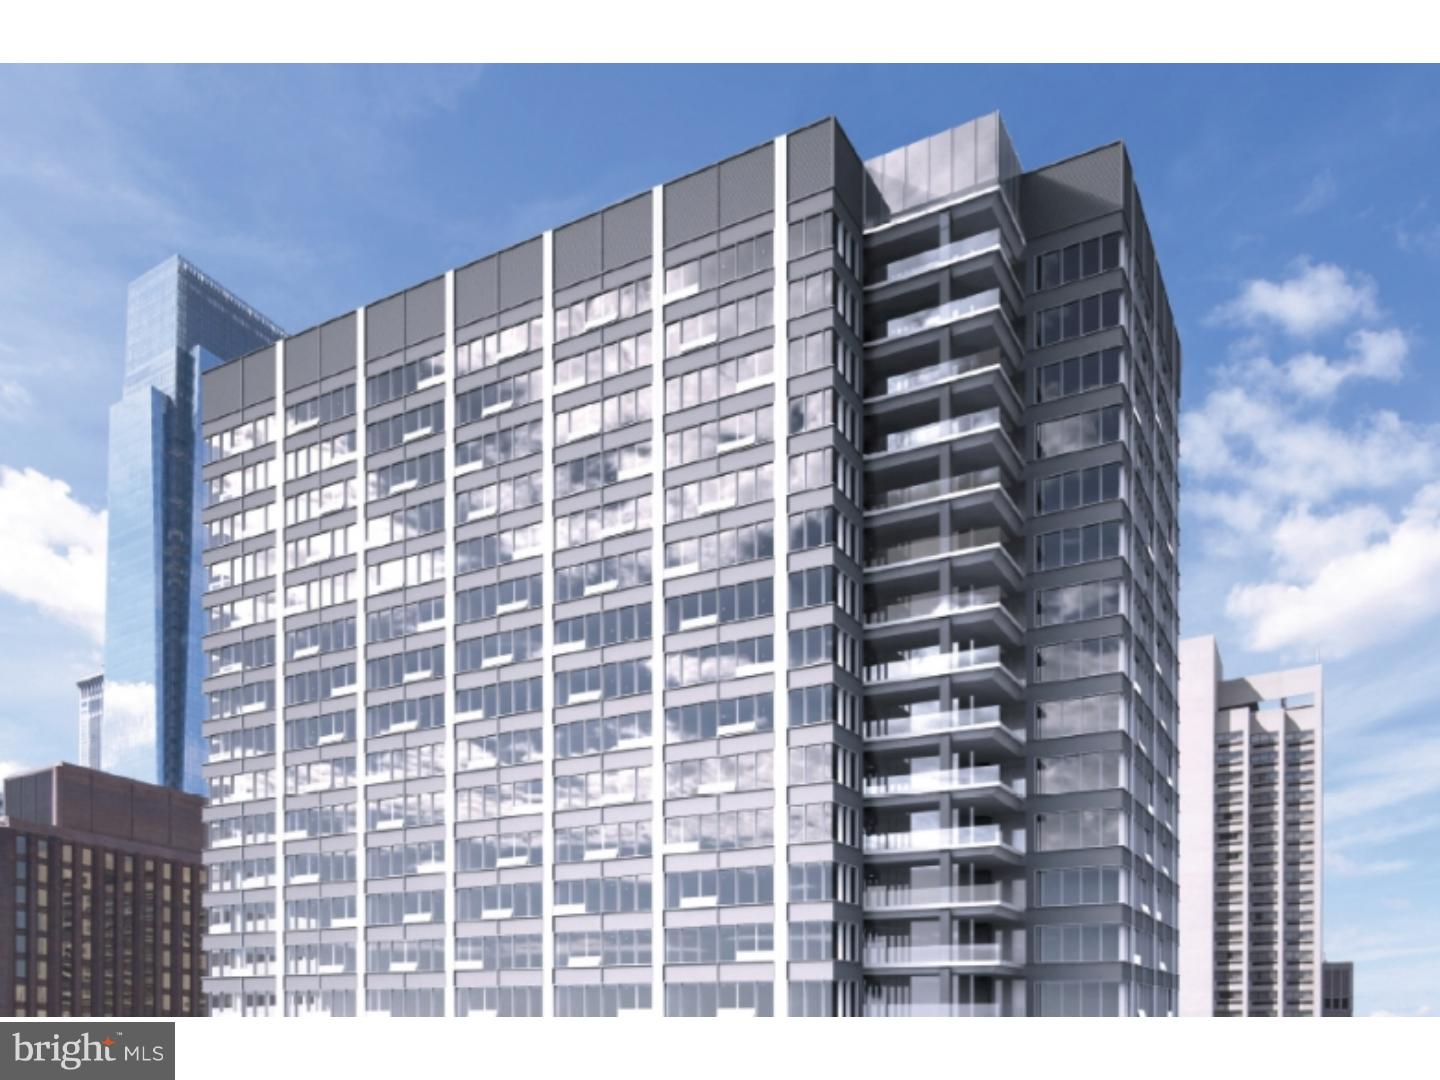 The BEN FRANKLIN BRIDGE & CITY HALL make Residence 925 a MUST SEE! This brand new apartment at FRANKLIN TOWER is off the charts, with a fantastic 2 bedroom layout. All HARDWOOD floors throughout, open kitchen with custom cabinets, all GRANITE COUNTER TOPS, stainless appliances, and breakfast bar. Bedrooms are SPACIOUS and GRACIOUS with huge closets. All marble, and tile baths with European white sandstone sinks. This new APARTMENT building community boasts, GARAGE PARKING, and one of the following on EVERY FLOOR: gyms, community rooms, business centers, screening rooms, and SPIN ROOMS. The ROOF DECK is the LARGEST in PHILADELPHIA, and has 360 degree AMAZING VIEWS!!!!!!!!! CENTER CITY'S NEWEST LUXURY GLASS TOWER RESIDENCE is a MUST SEE TO BELIEVE  LIFE STYLE property, and just minutes from fantastic dining, entertainment, Hahnemann hospital, I95, I676, Kelly Drive, The Barnes, and Whole foods Market. Incentives: Limited time 1 month free on a 13 month lease, waived app fee, and waived $350 amenity fee. Parking available for additional fee. Photo's are of model unit.